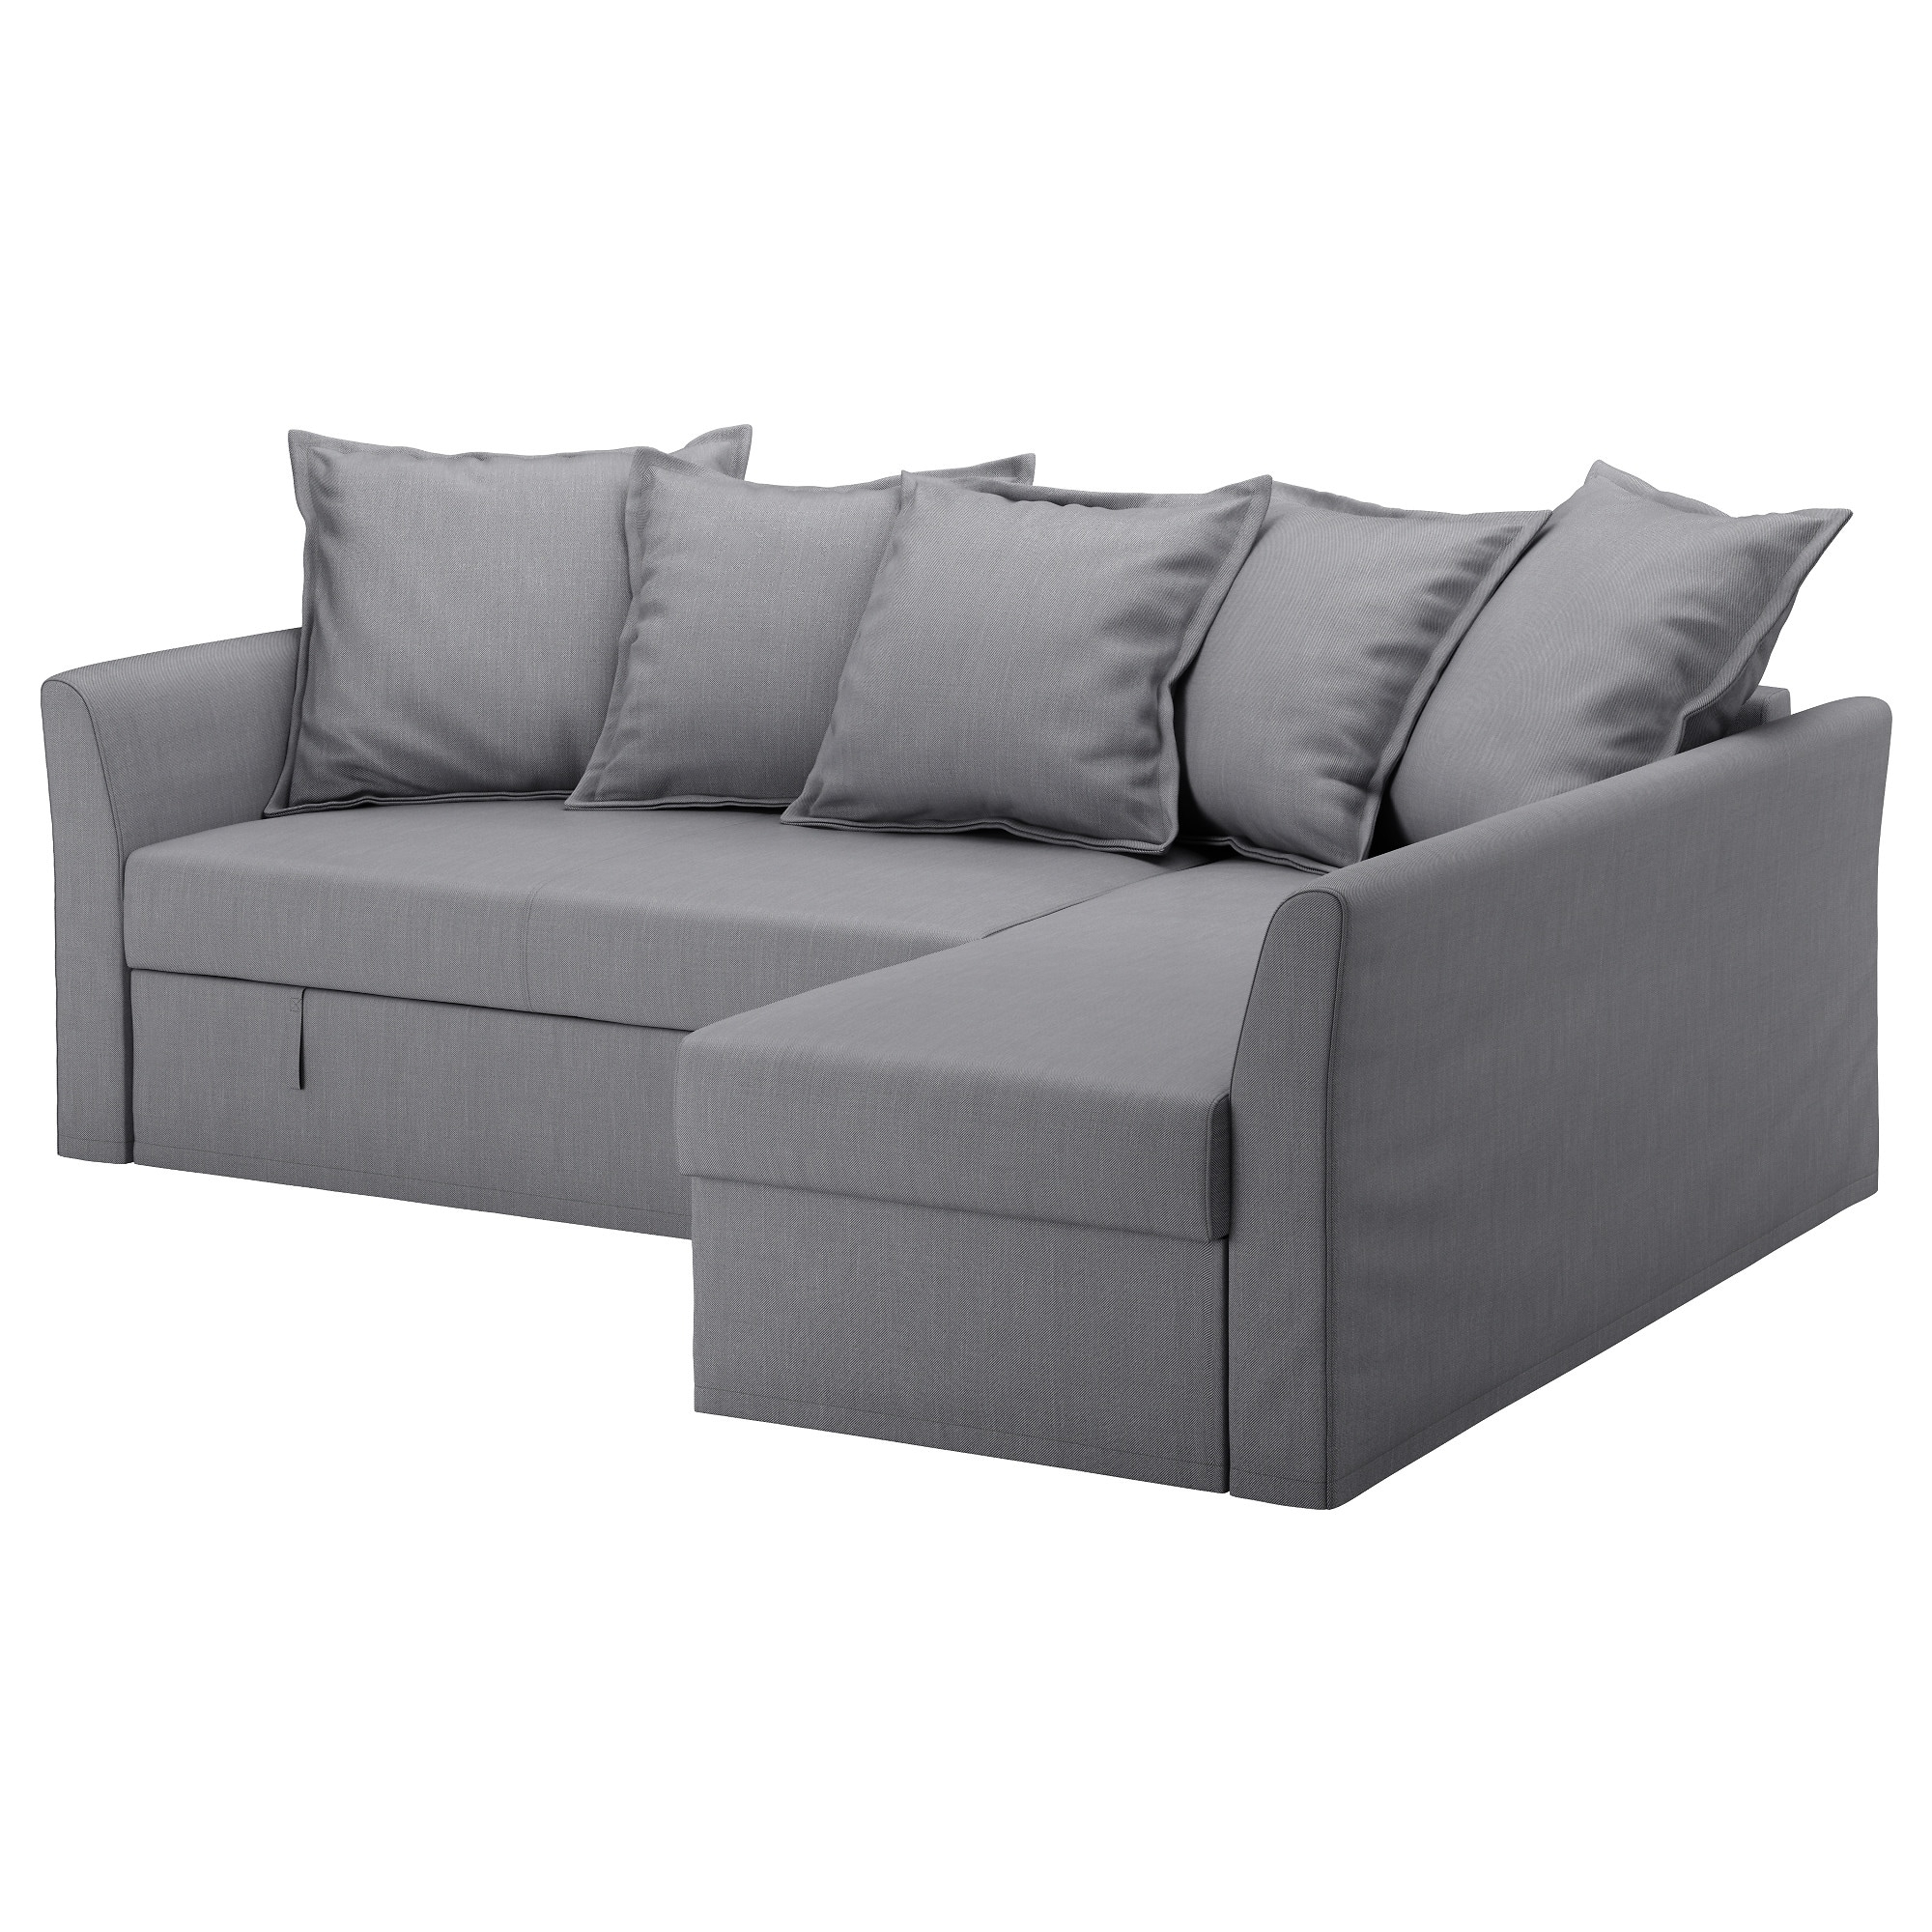 Holmsund Corner Sofa Bed Nordvalla Medium Grey – Ikea With Regard To Ikea Sofa Chairs (View 4 of 25)